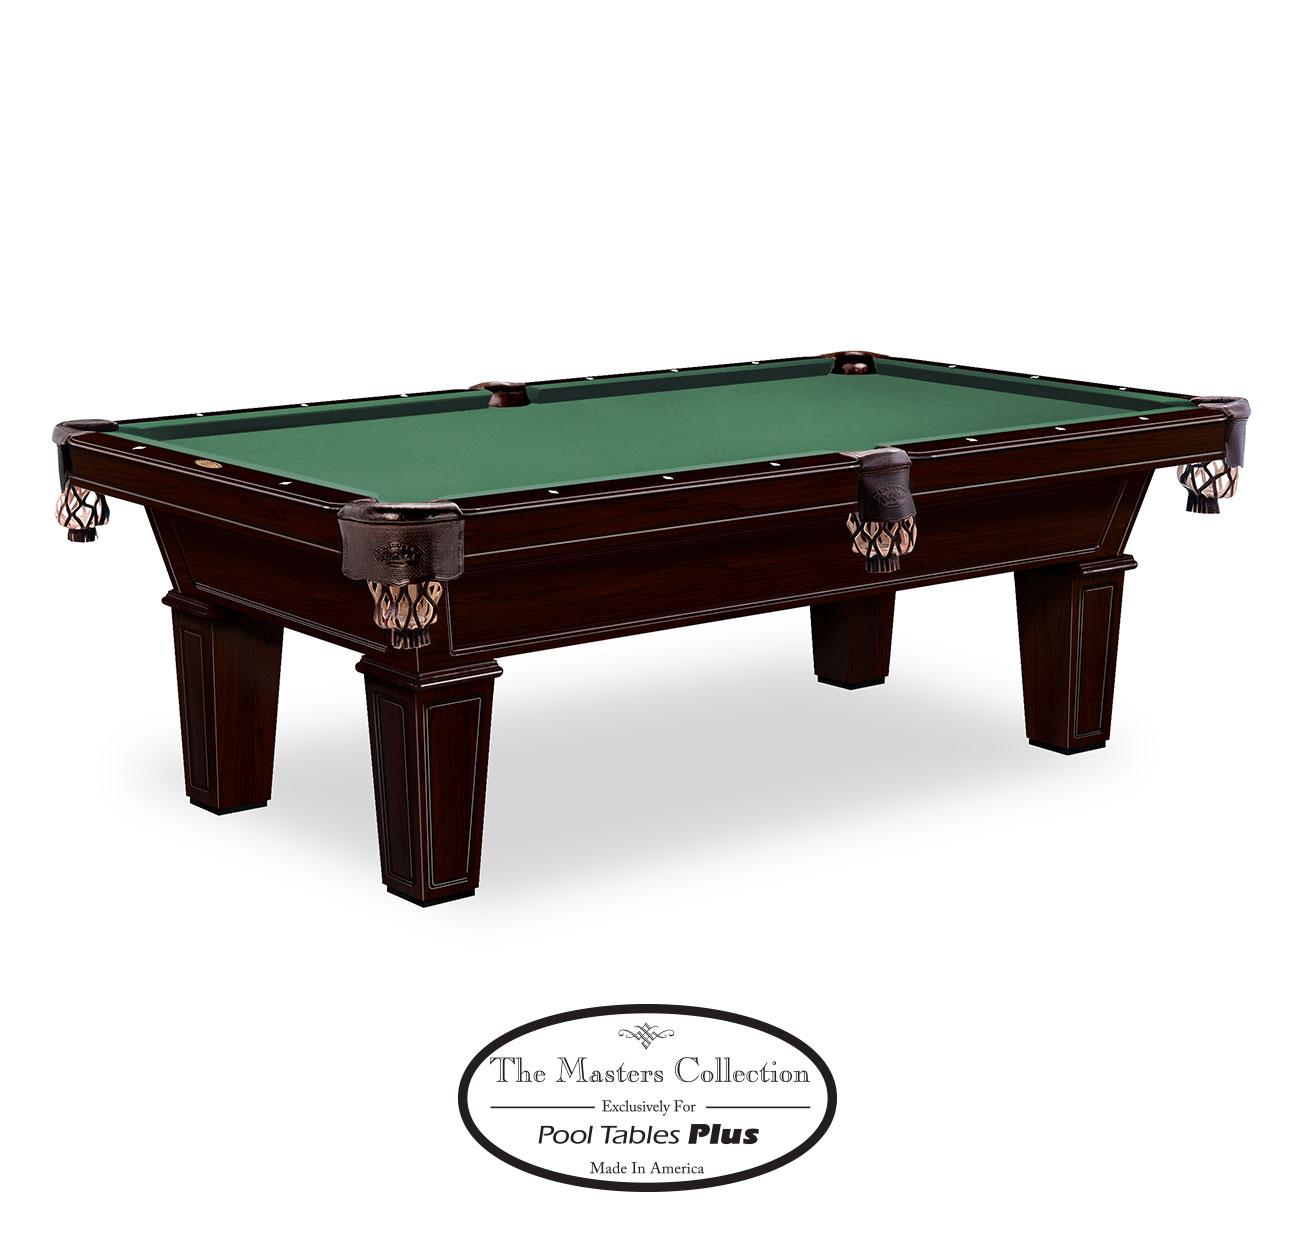 Bridgeport TC Pool Table - Kensington pool table